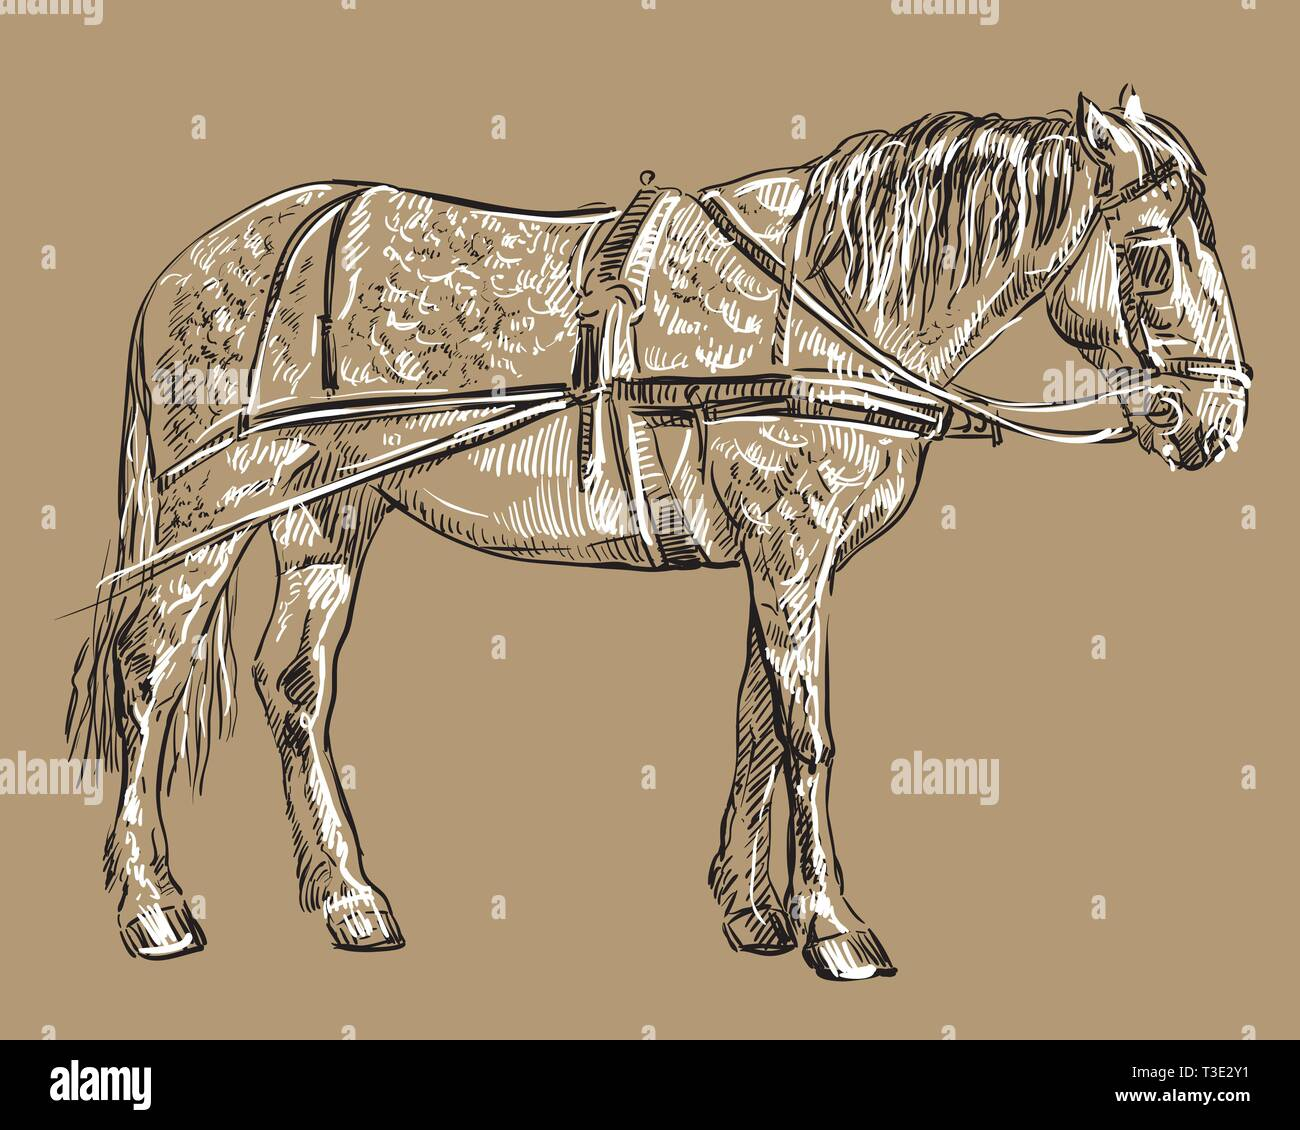 Harness Bridle Stock Photos & Harness Bridle Stock Images - Alamy